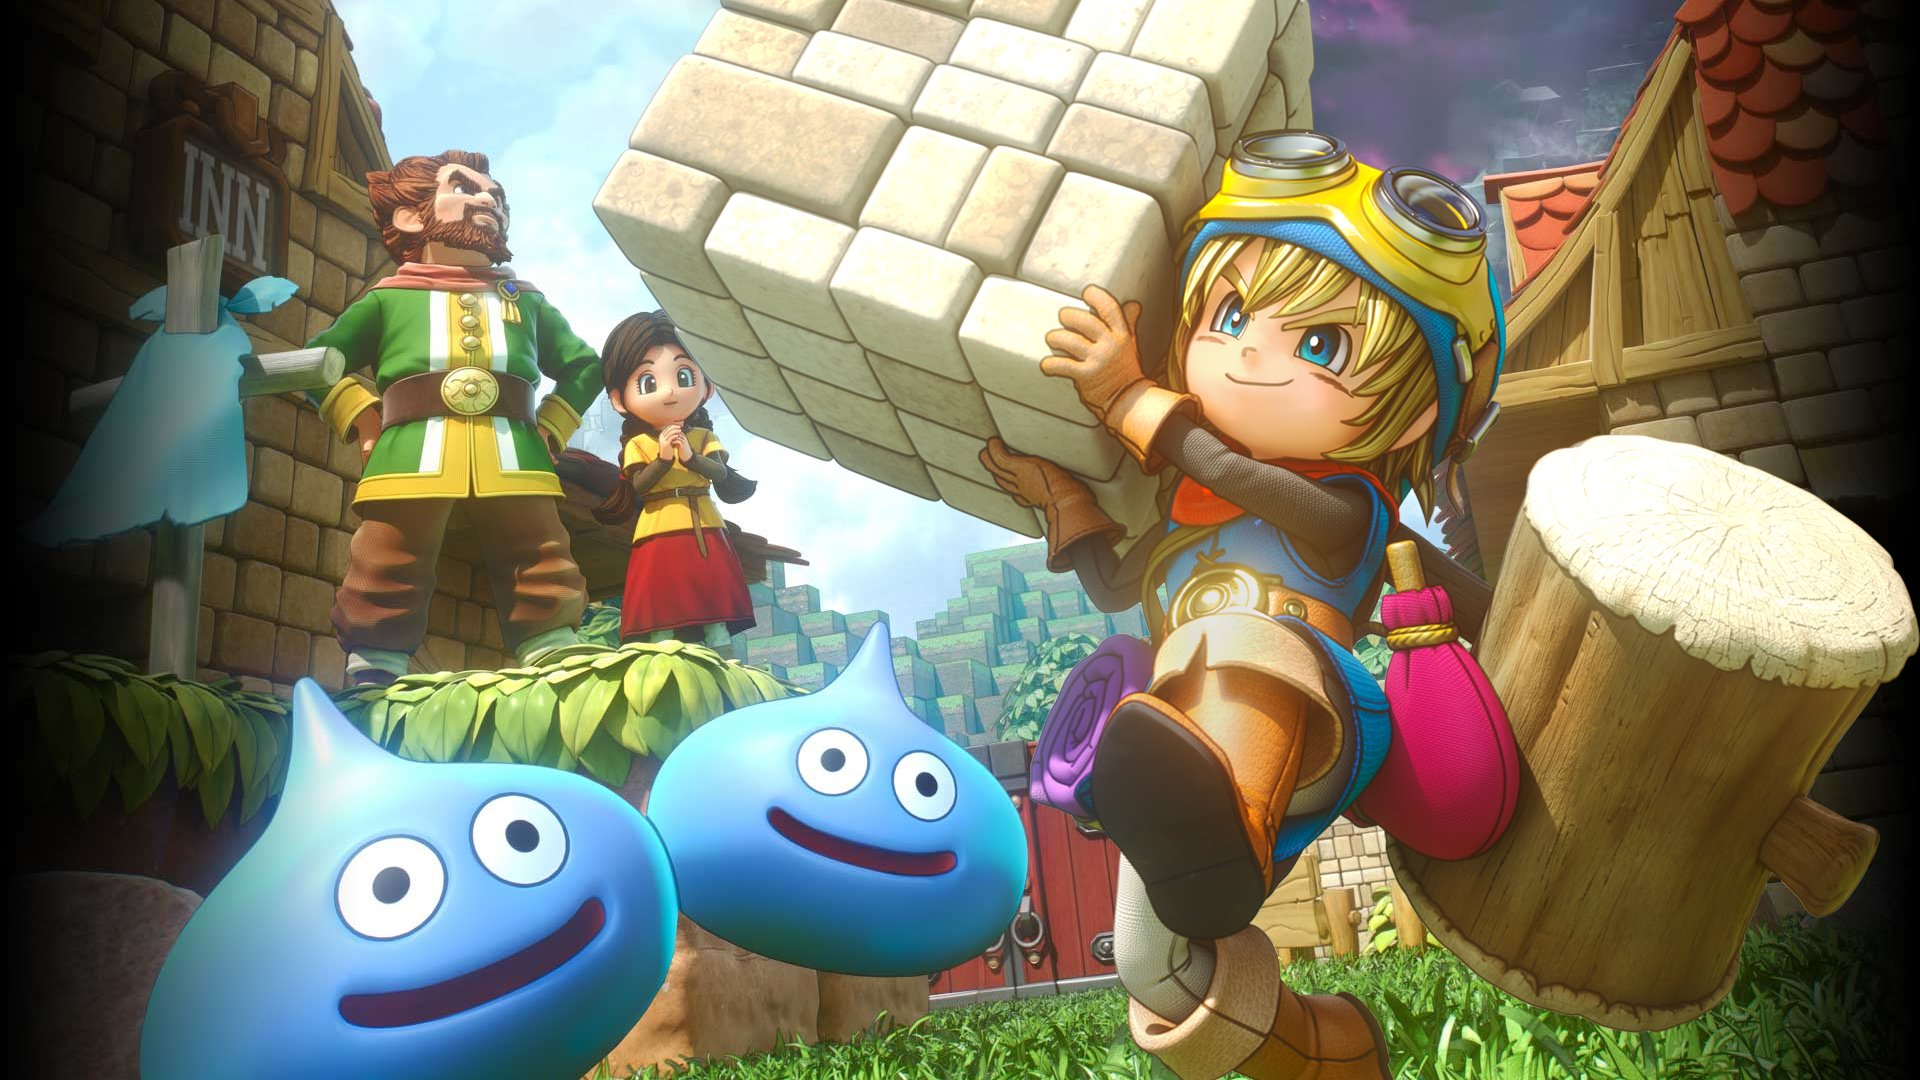 Review: Dragon Quest Builders, or how I spent dozens of hours rebuilding civilization